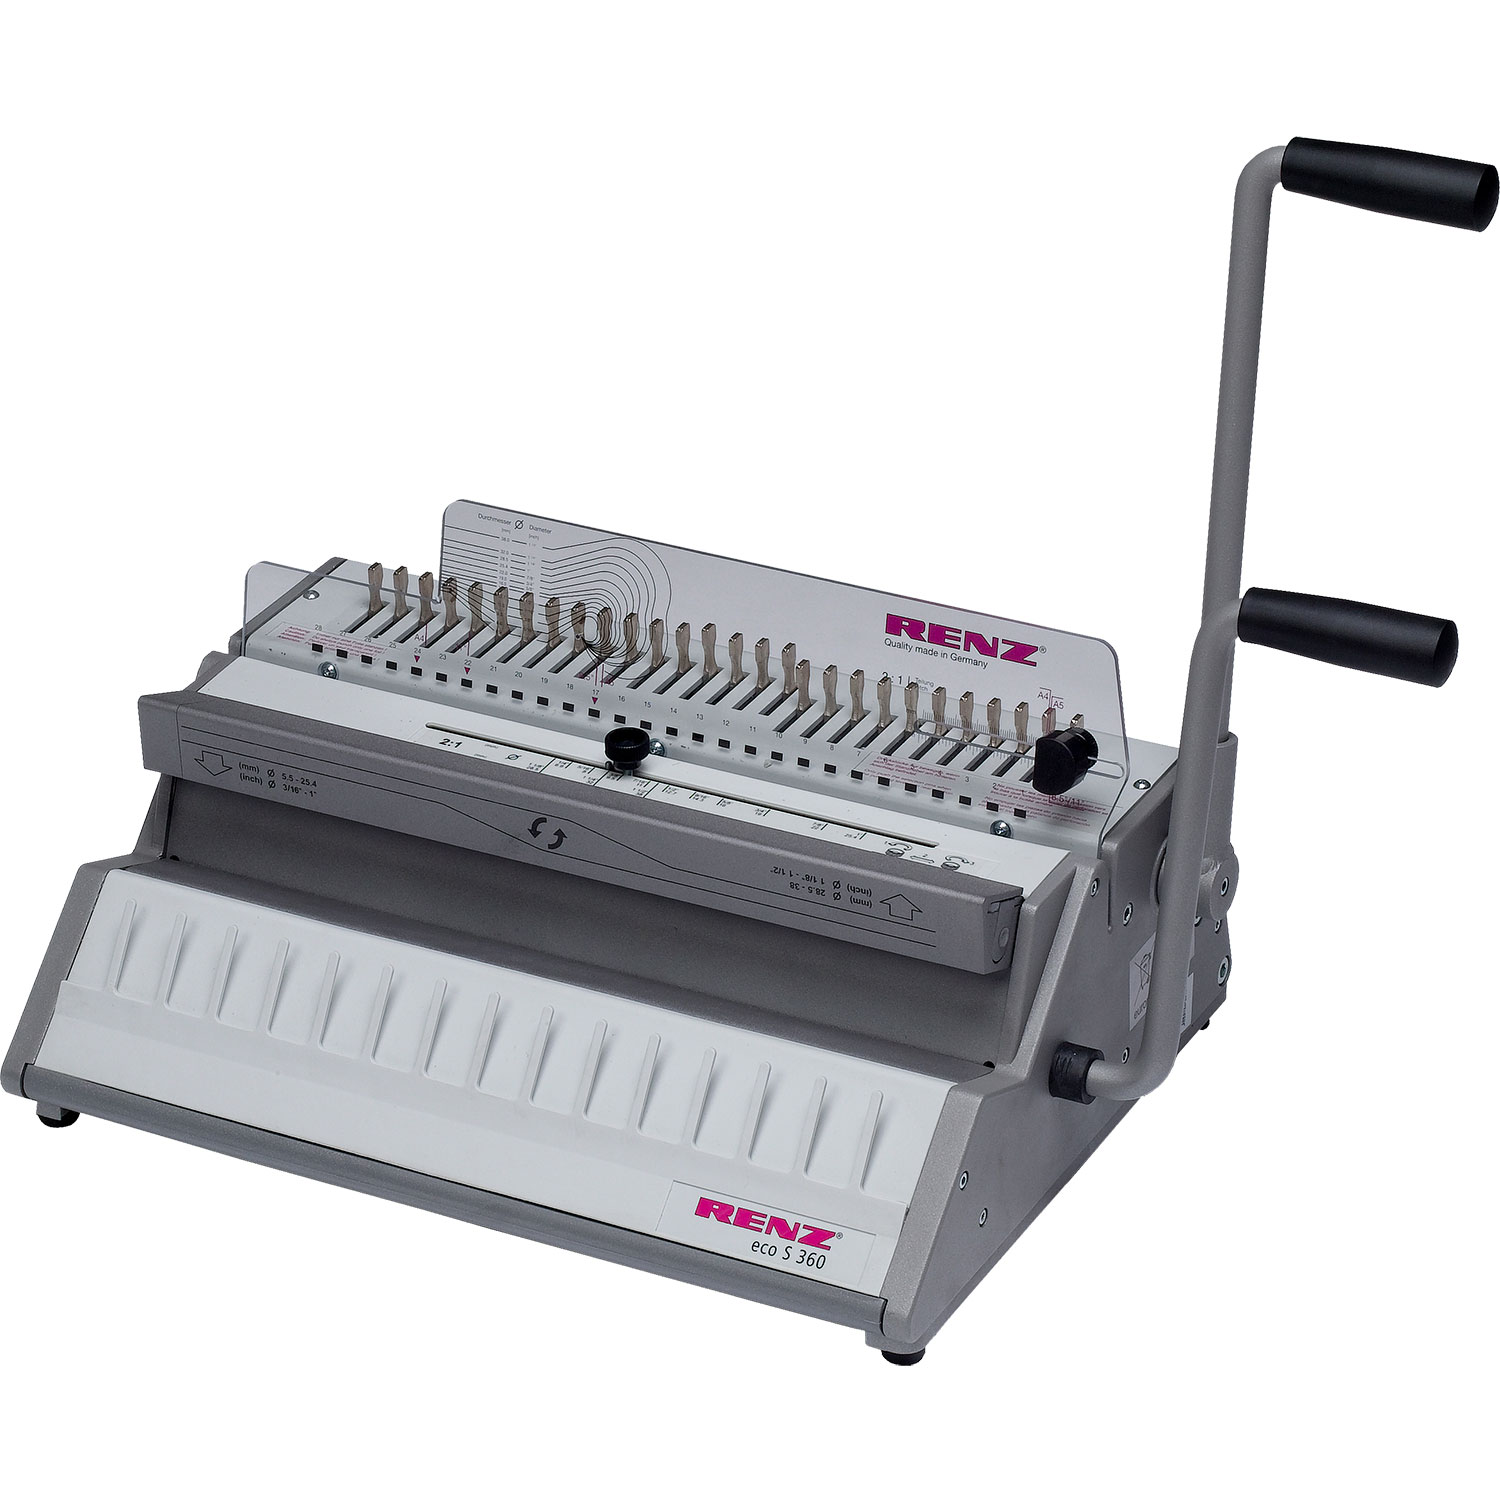 Renz ECO-S 360 2:1 Manual Binding Machine